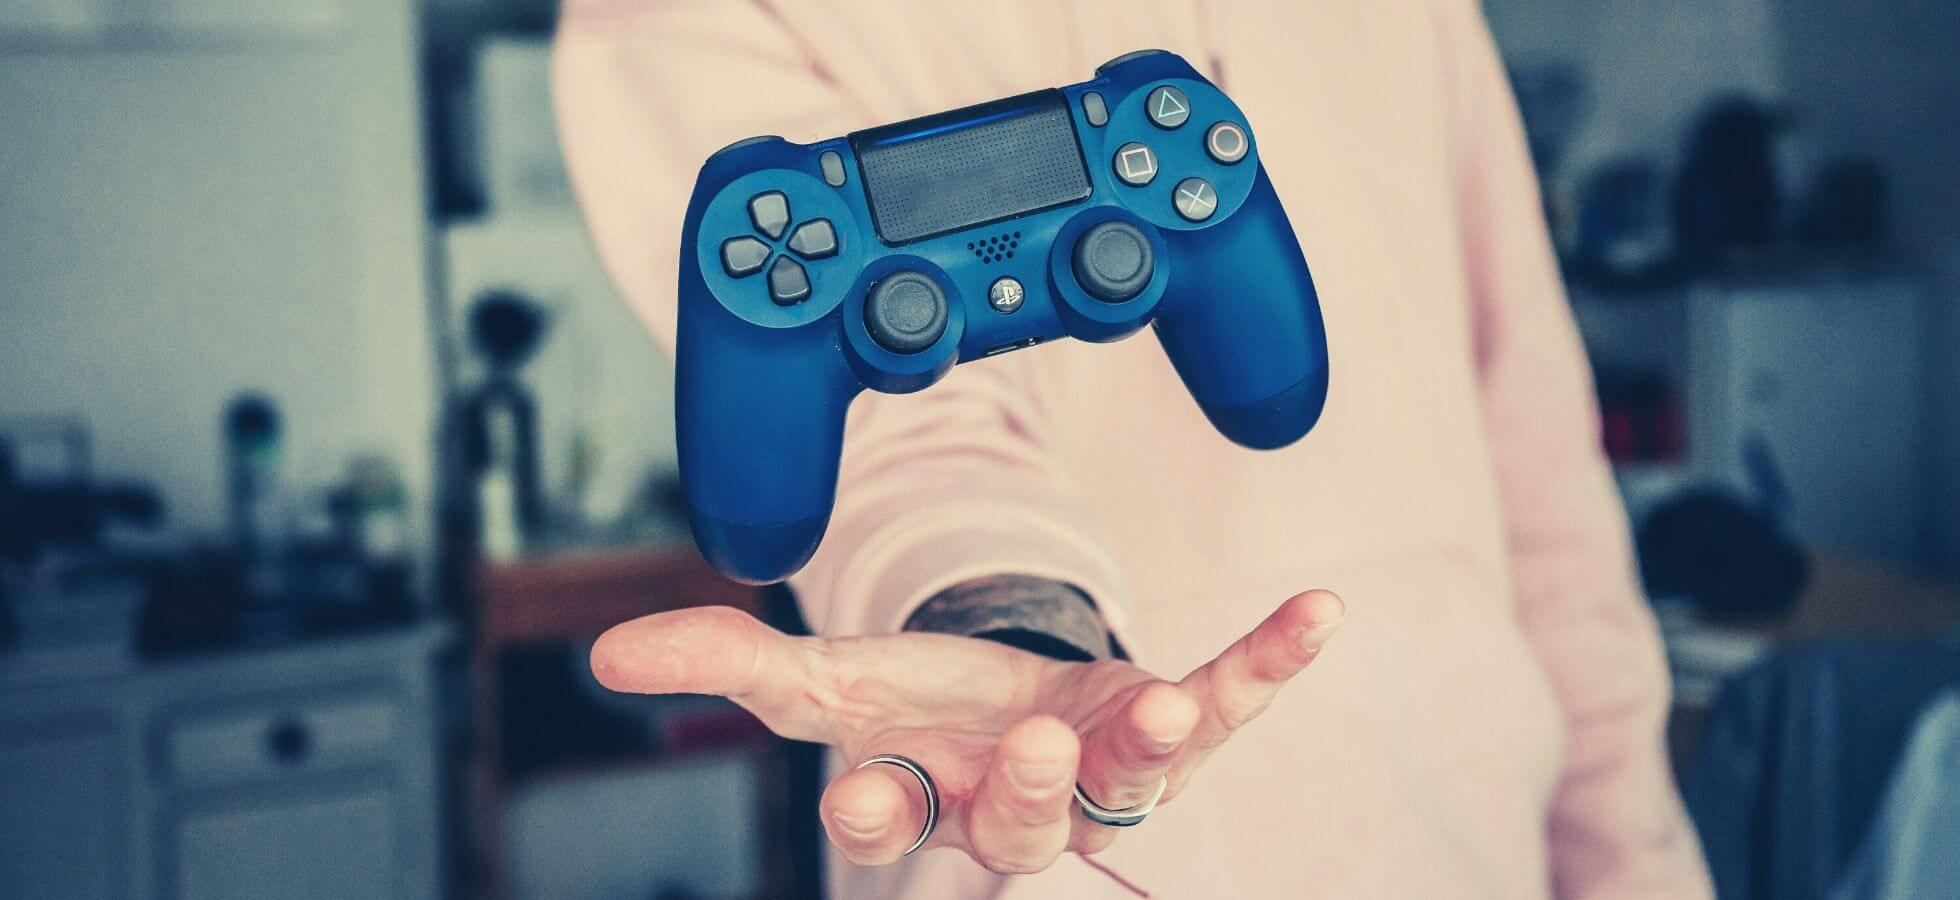 11 Guaranteed Ways To Become A Better Gamer